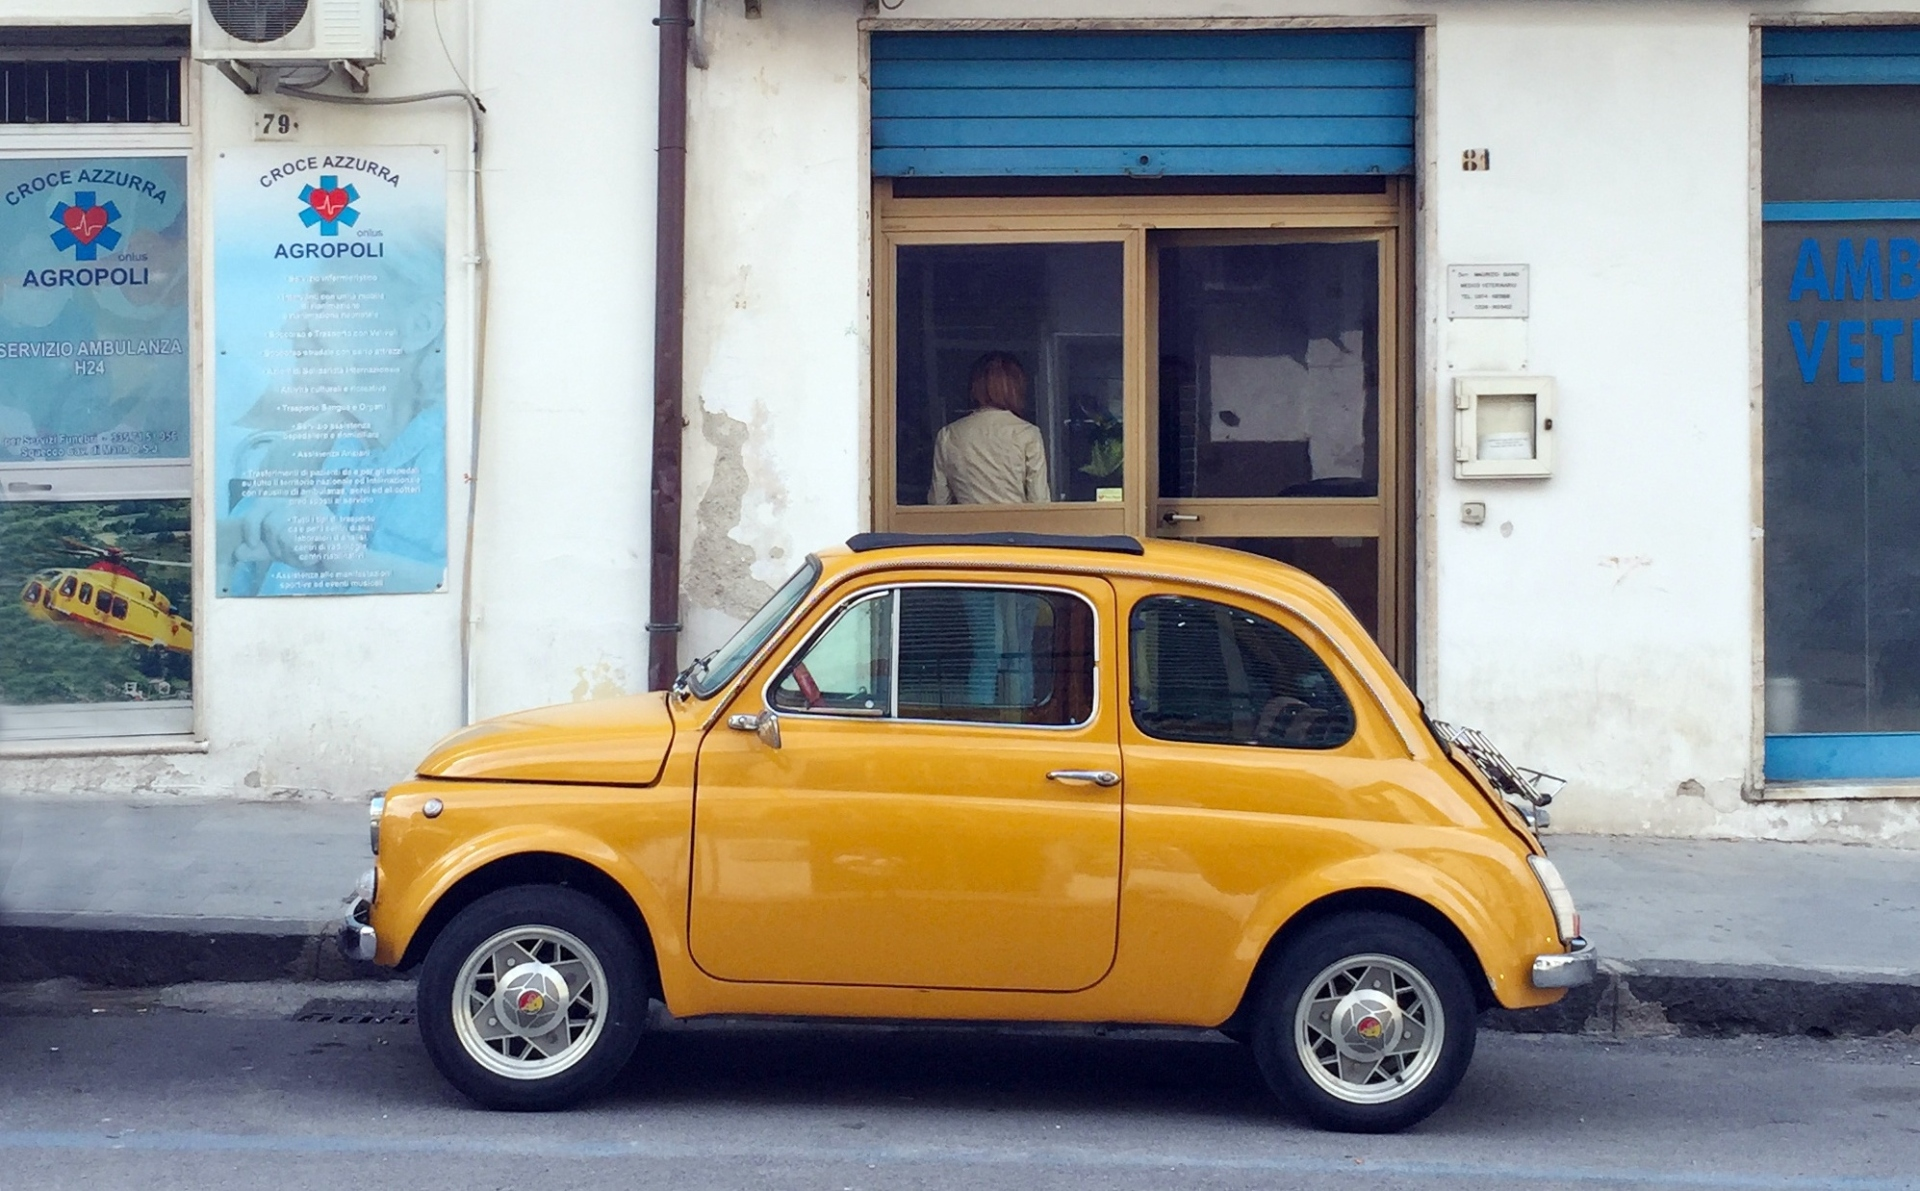 Fiat 500. Photo from Unsplash